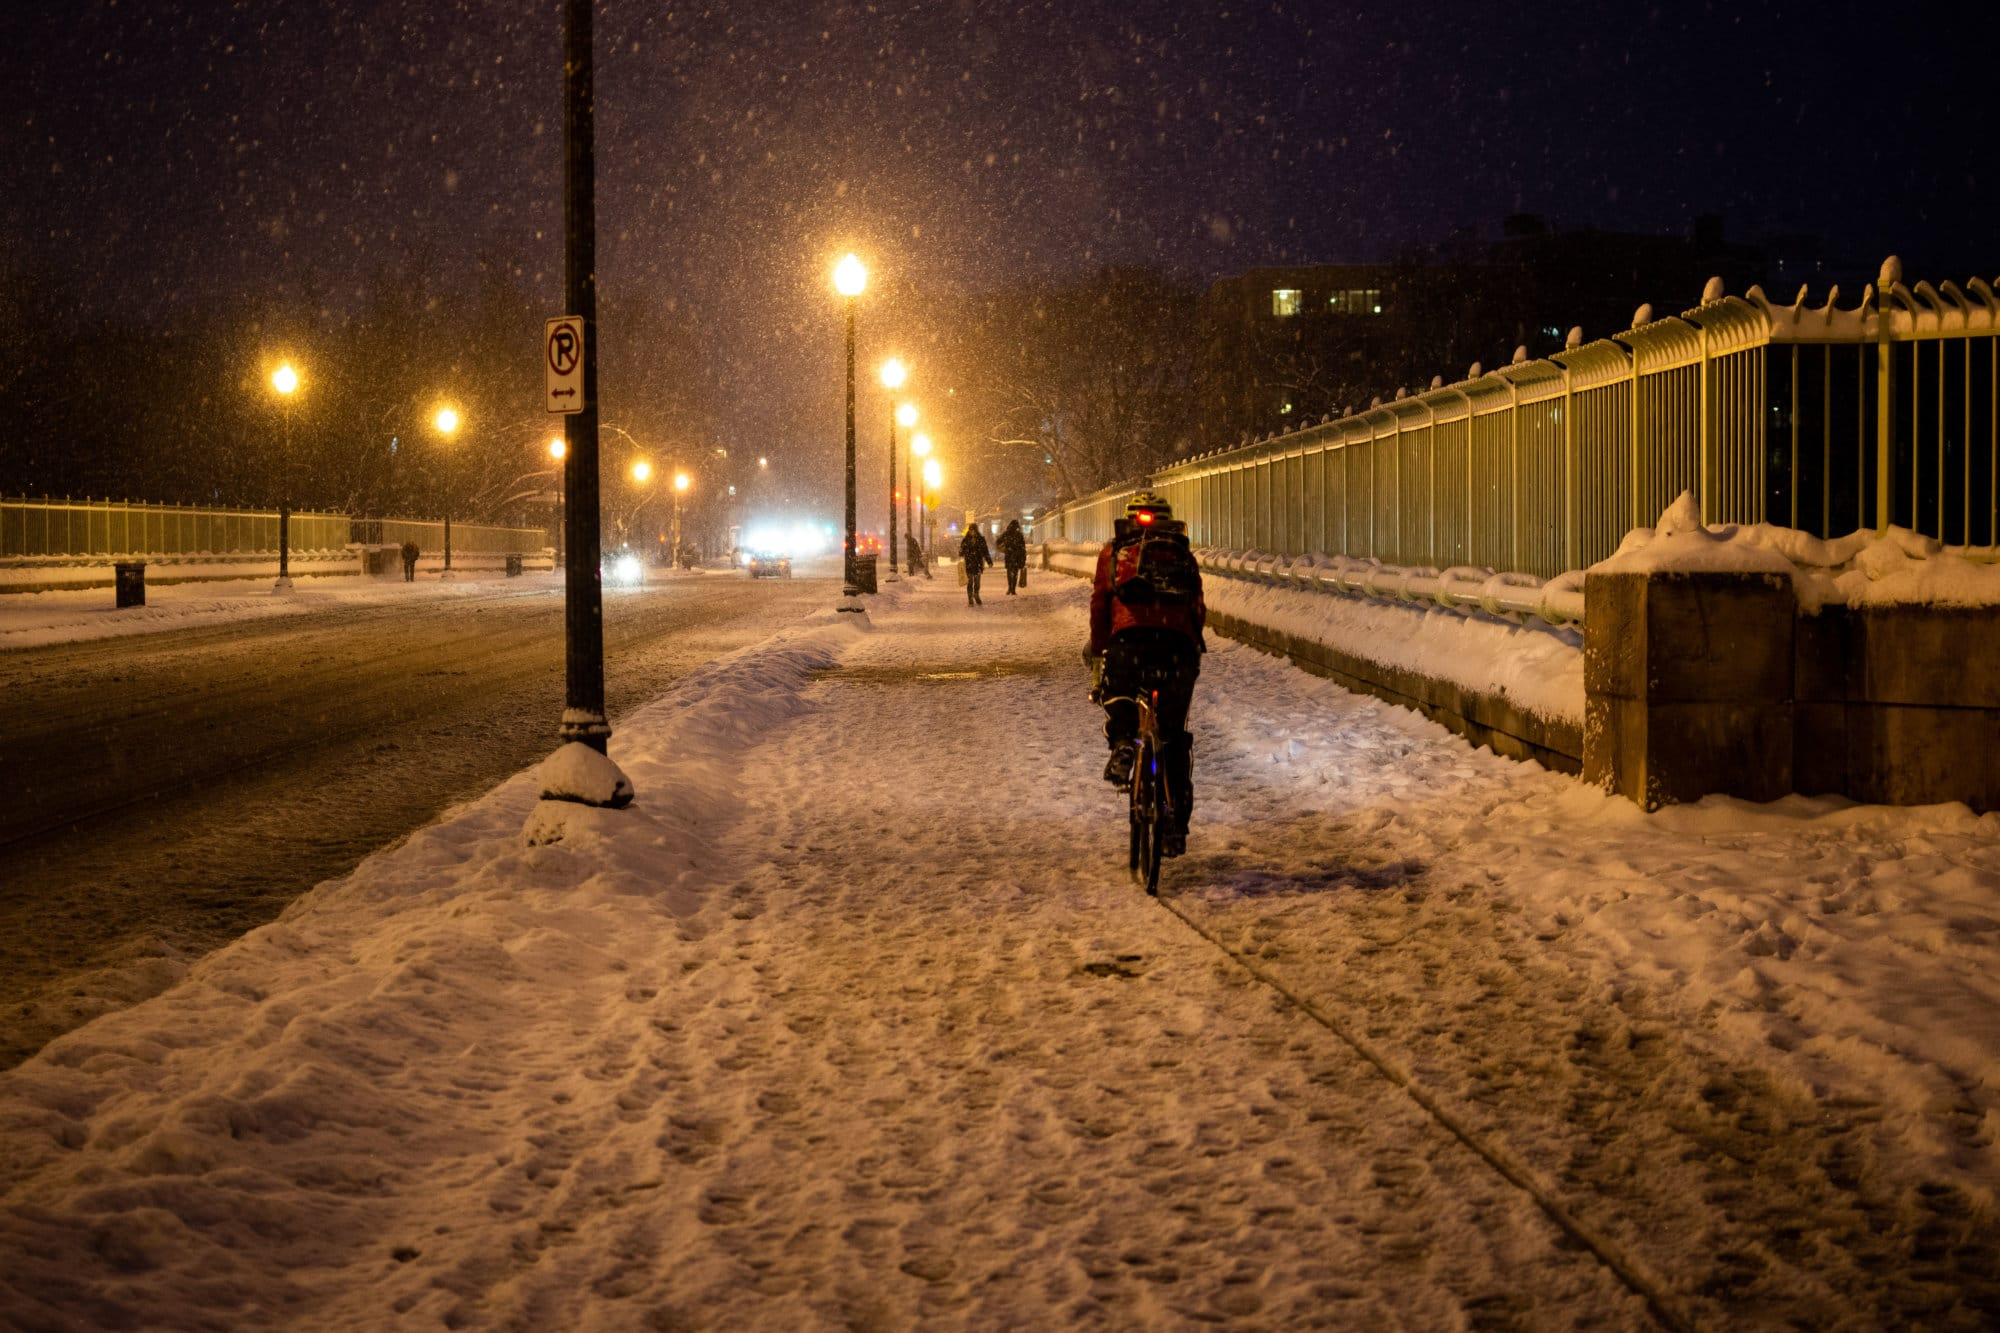 A cyclist carves a line through the slush on the Duke Ellington Memorial Bridge, looking west toward Woodley Park on Sunday evening. Much of the sidewalk heading into Adams Morgan remained untreated, save for a small number of residents shoveling snow. (WTOP/Alejandro Alvarez)